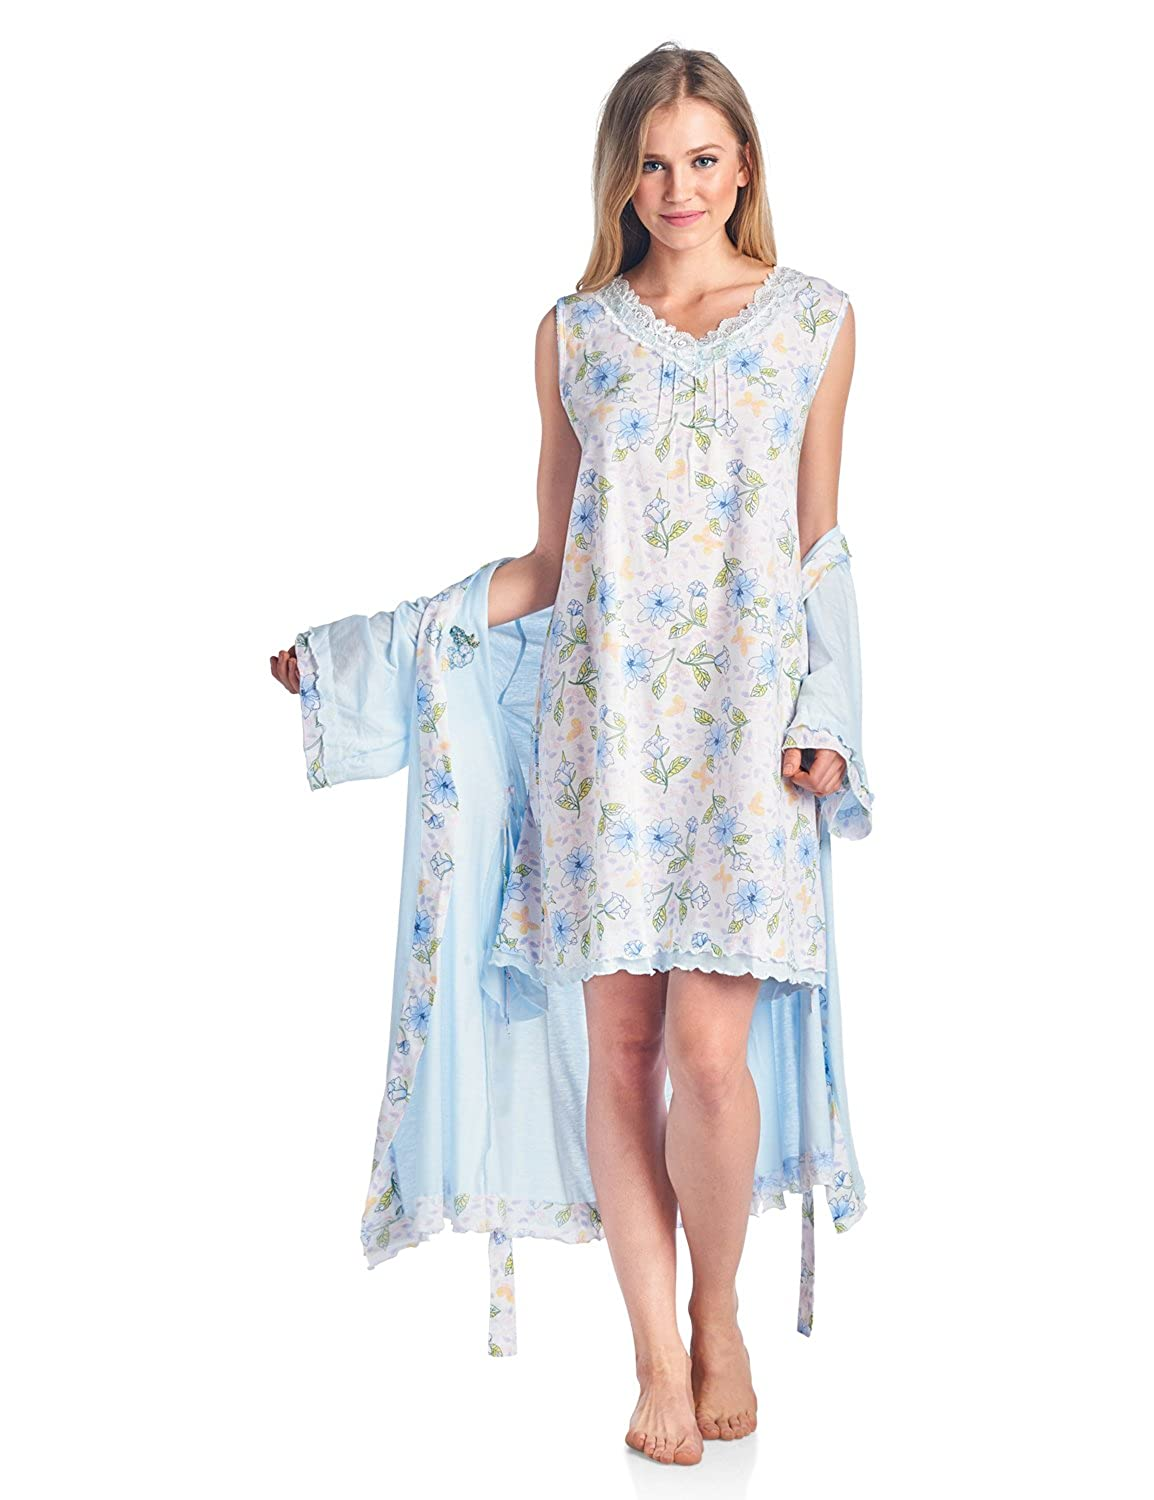 Casual Nights Womens Sleepwear 2 Piece Nightgown And Robe Set At